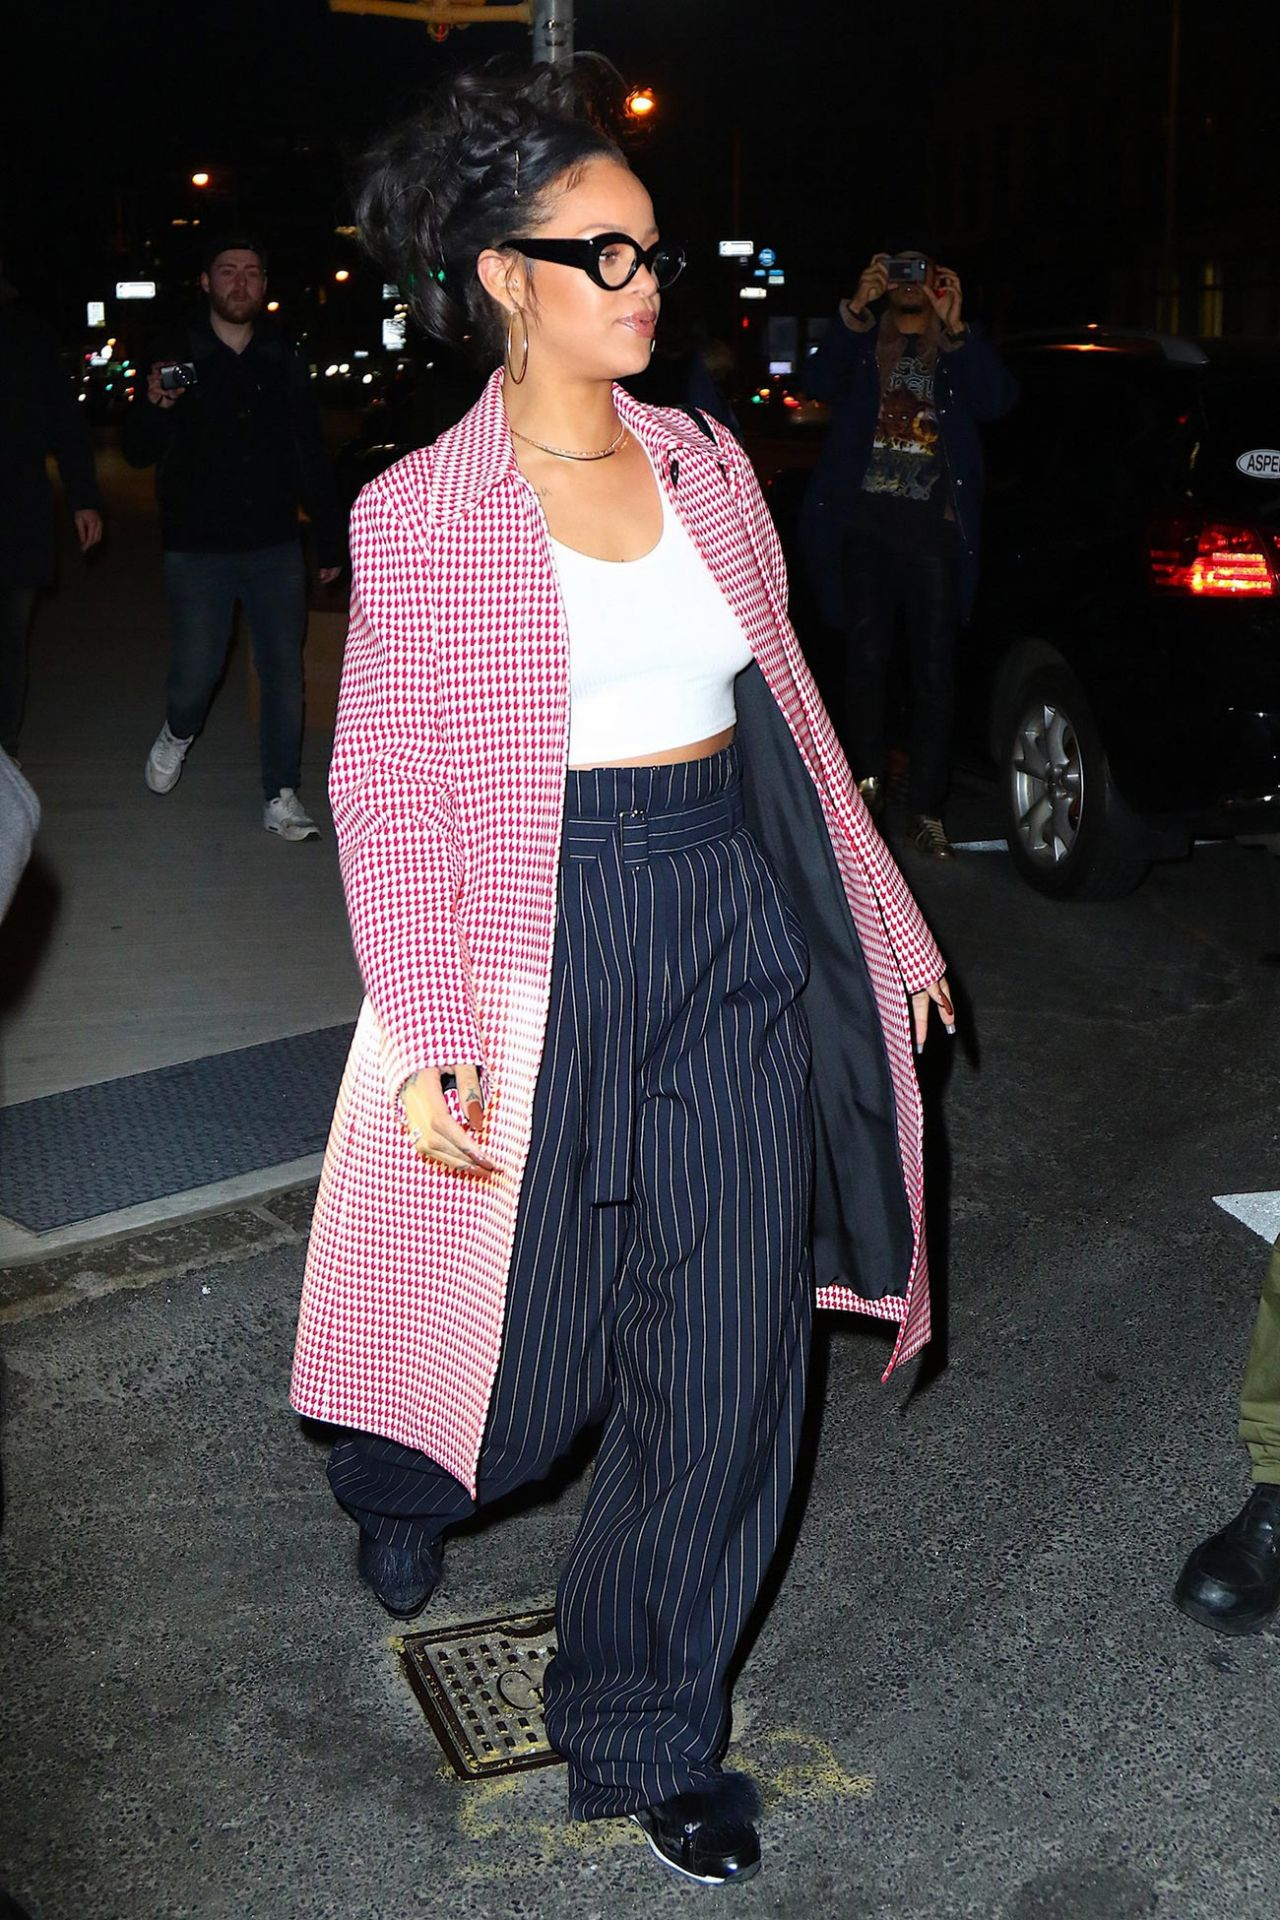 Rihanna Night Out Style New York City 1 2 2016